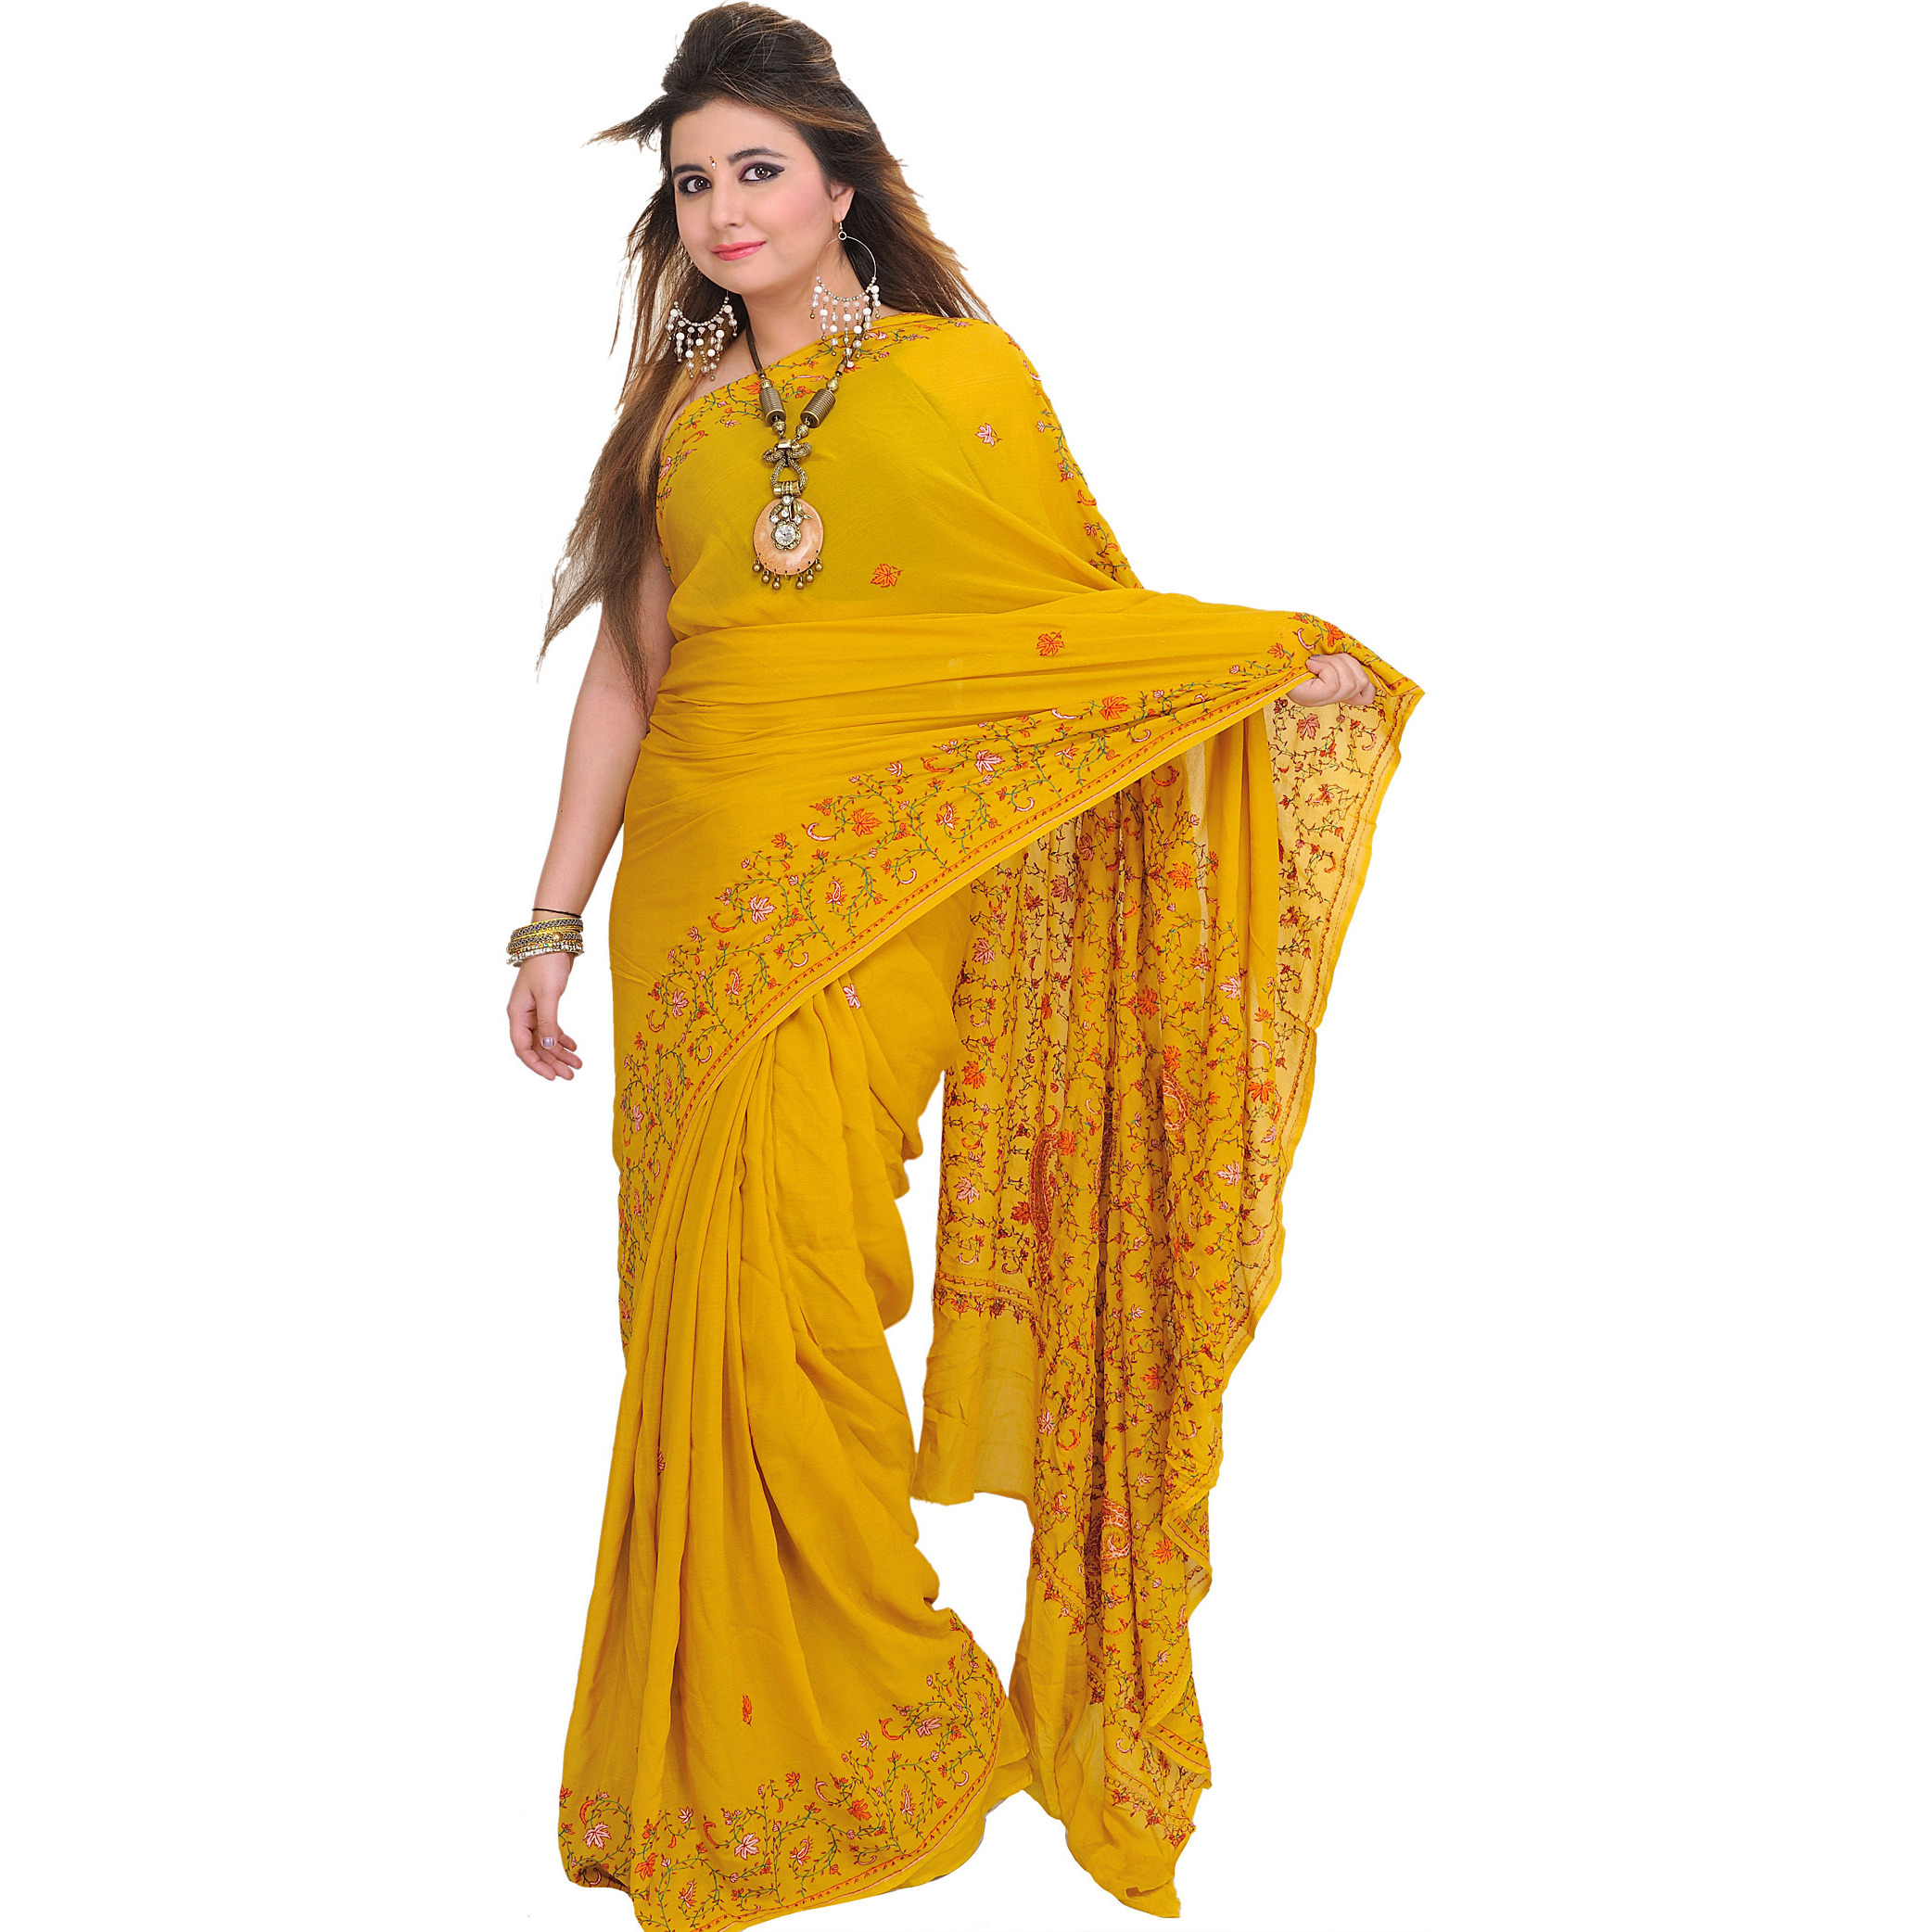 Lemon-Curry Ultralight Sari from Kashmir with Sozni Embroidery by Hand